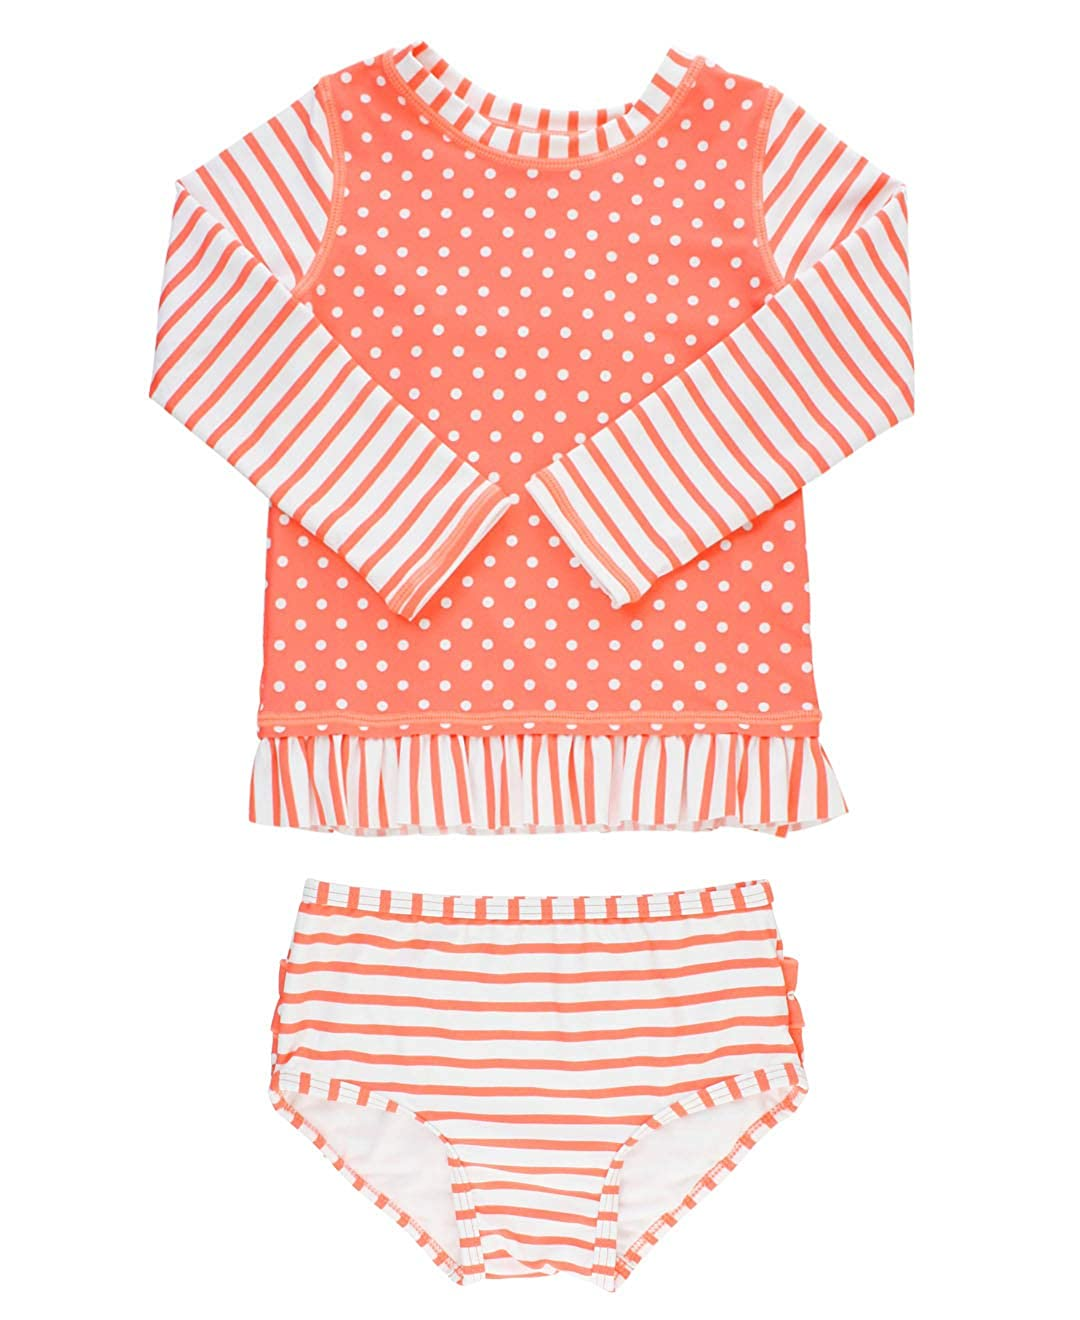 RuffleButts Baby//Toddler Girls Long Sleeve Rash Guard 2-Piece Swimsuit Set Stripes Polka with UPF 50 Sun Protection